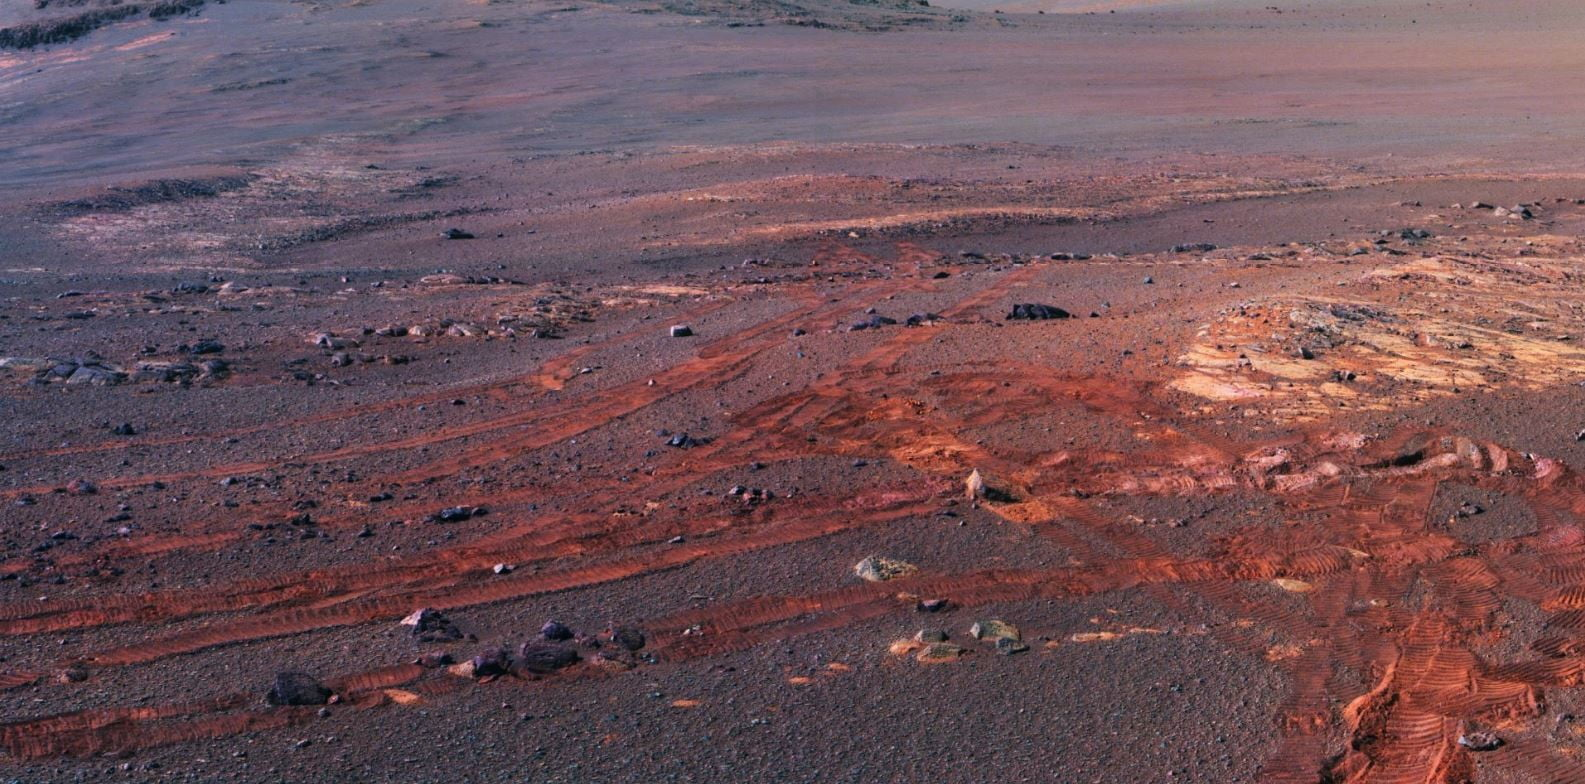 Opportunity's final image is a haunting panorama of the Martian surface